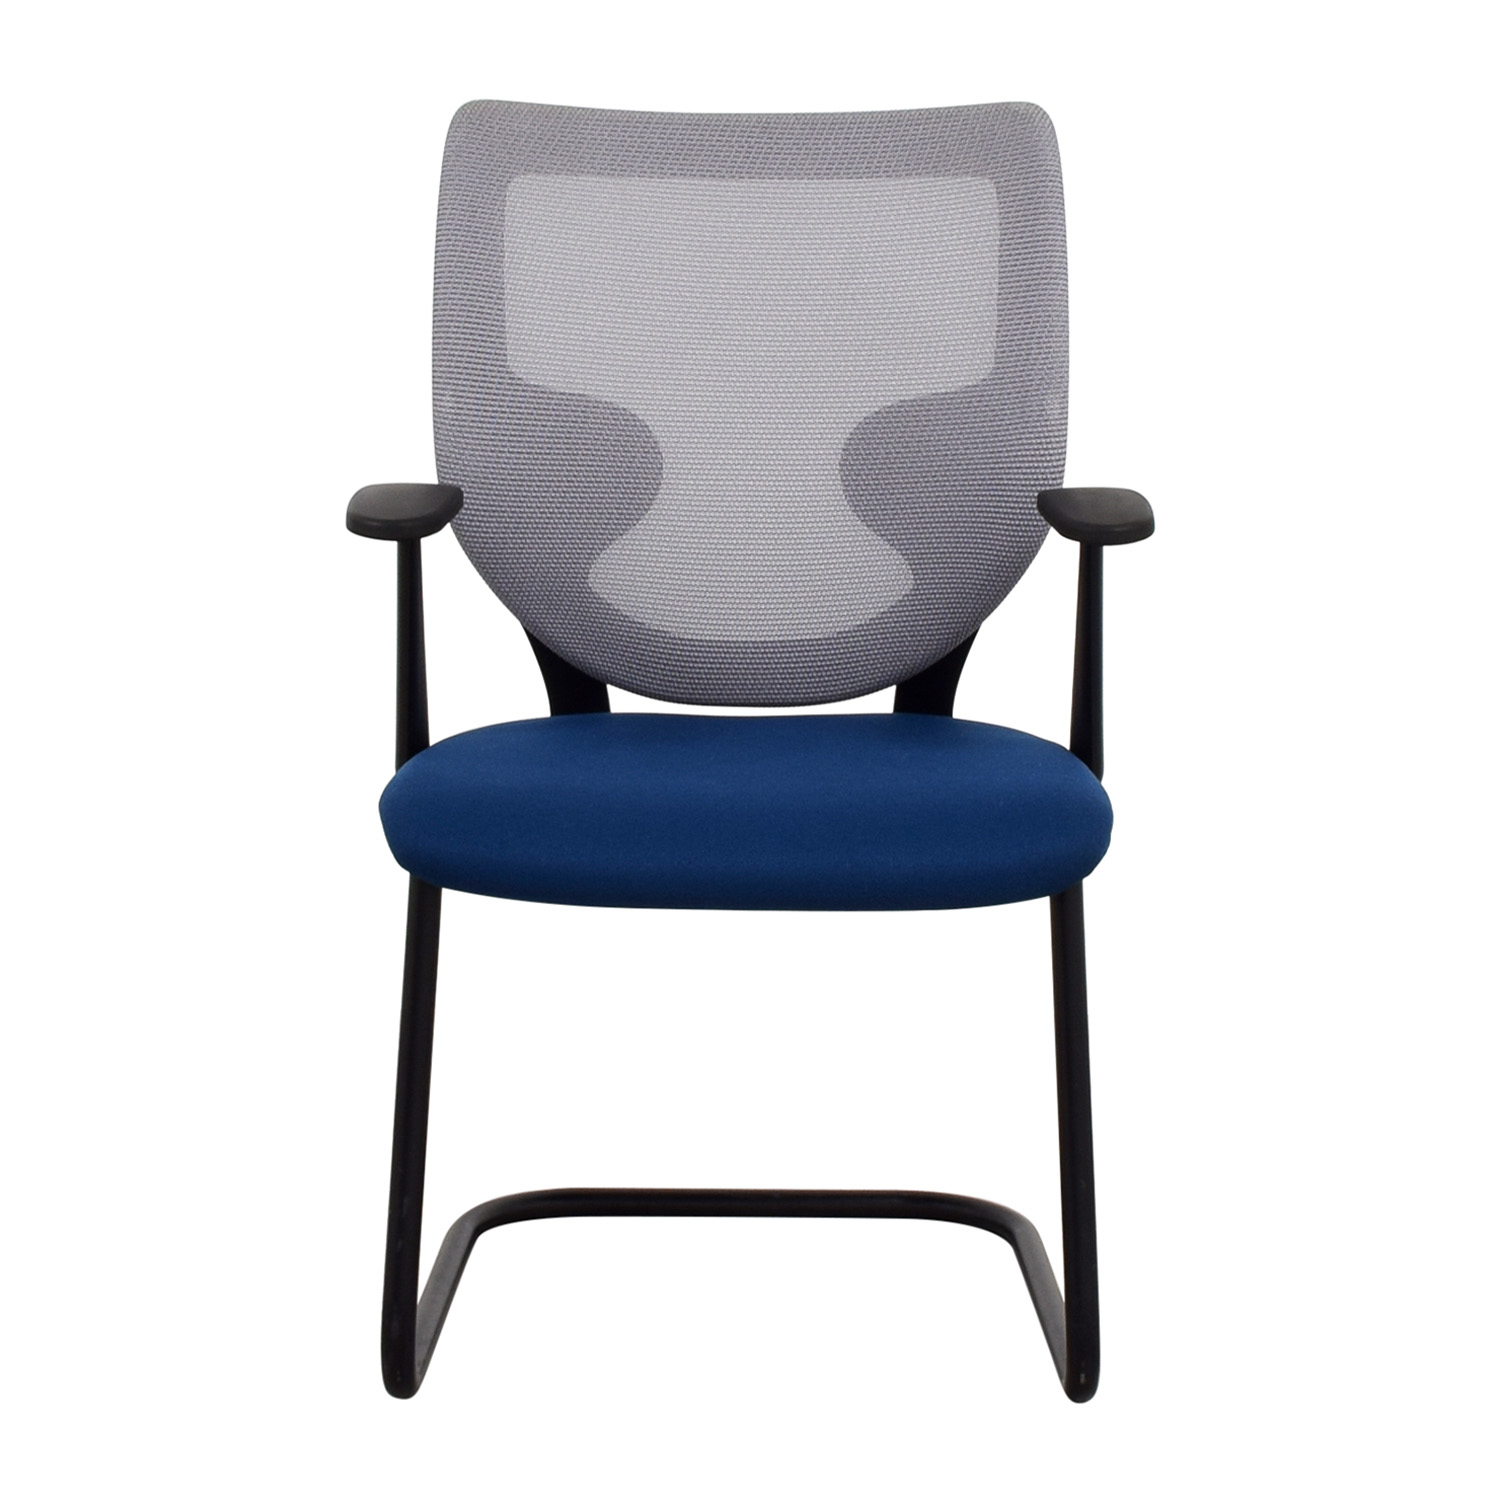 chair mesh stool banquet covers white 90 off keilhauer blue chairs